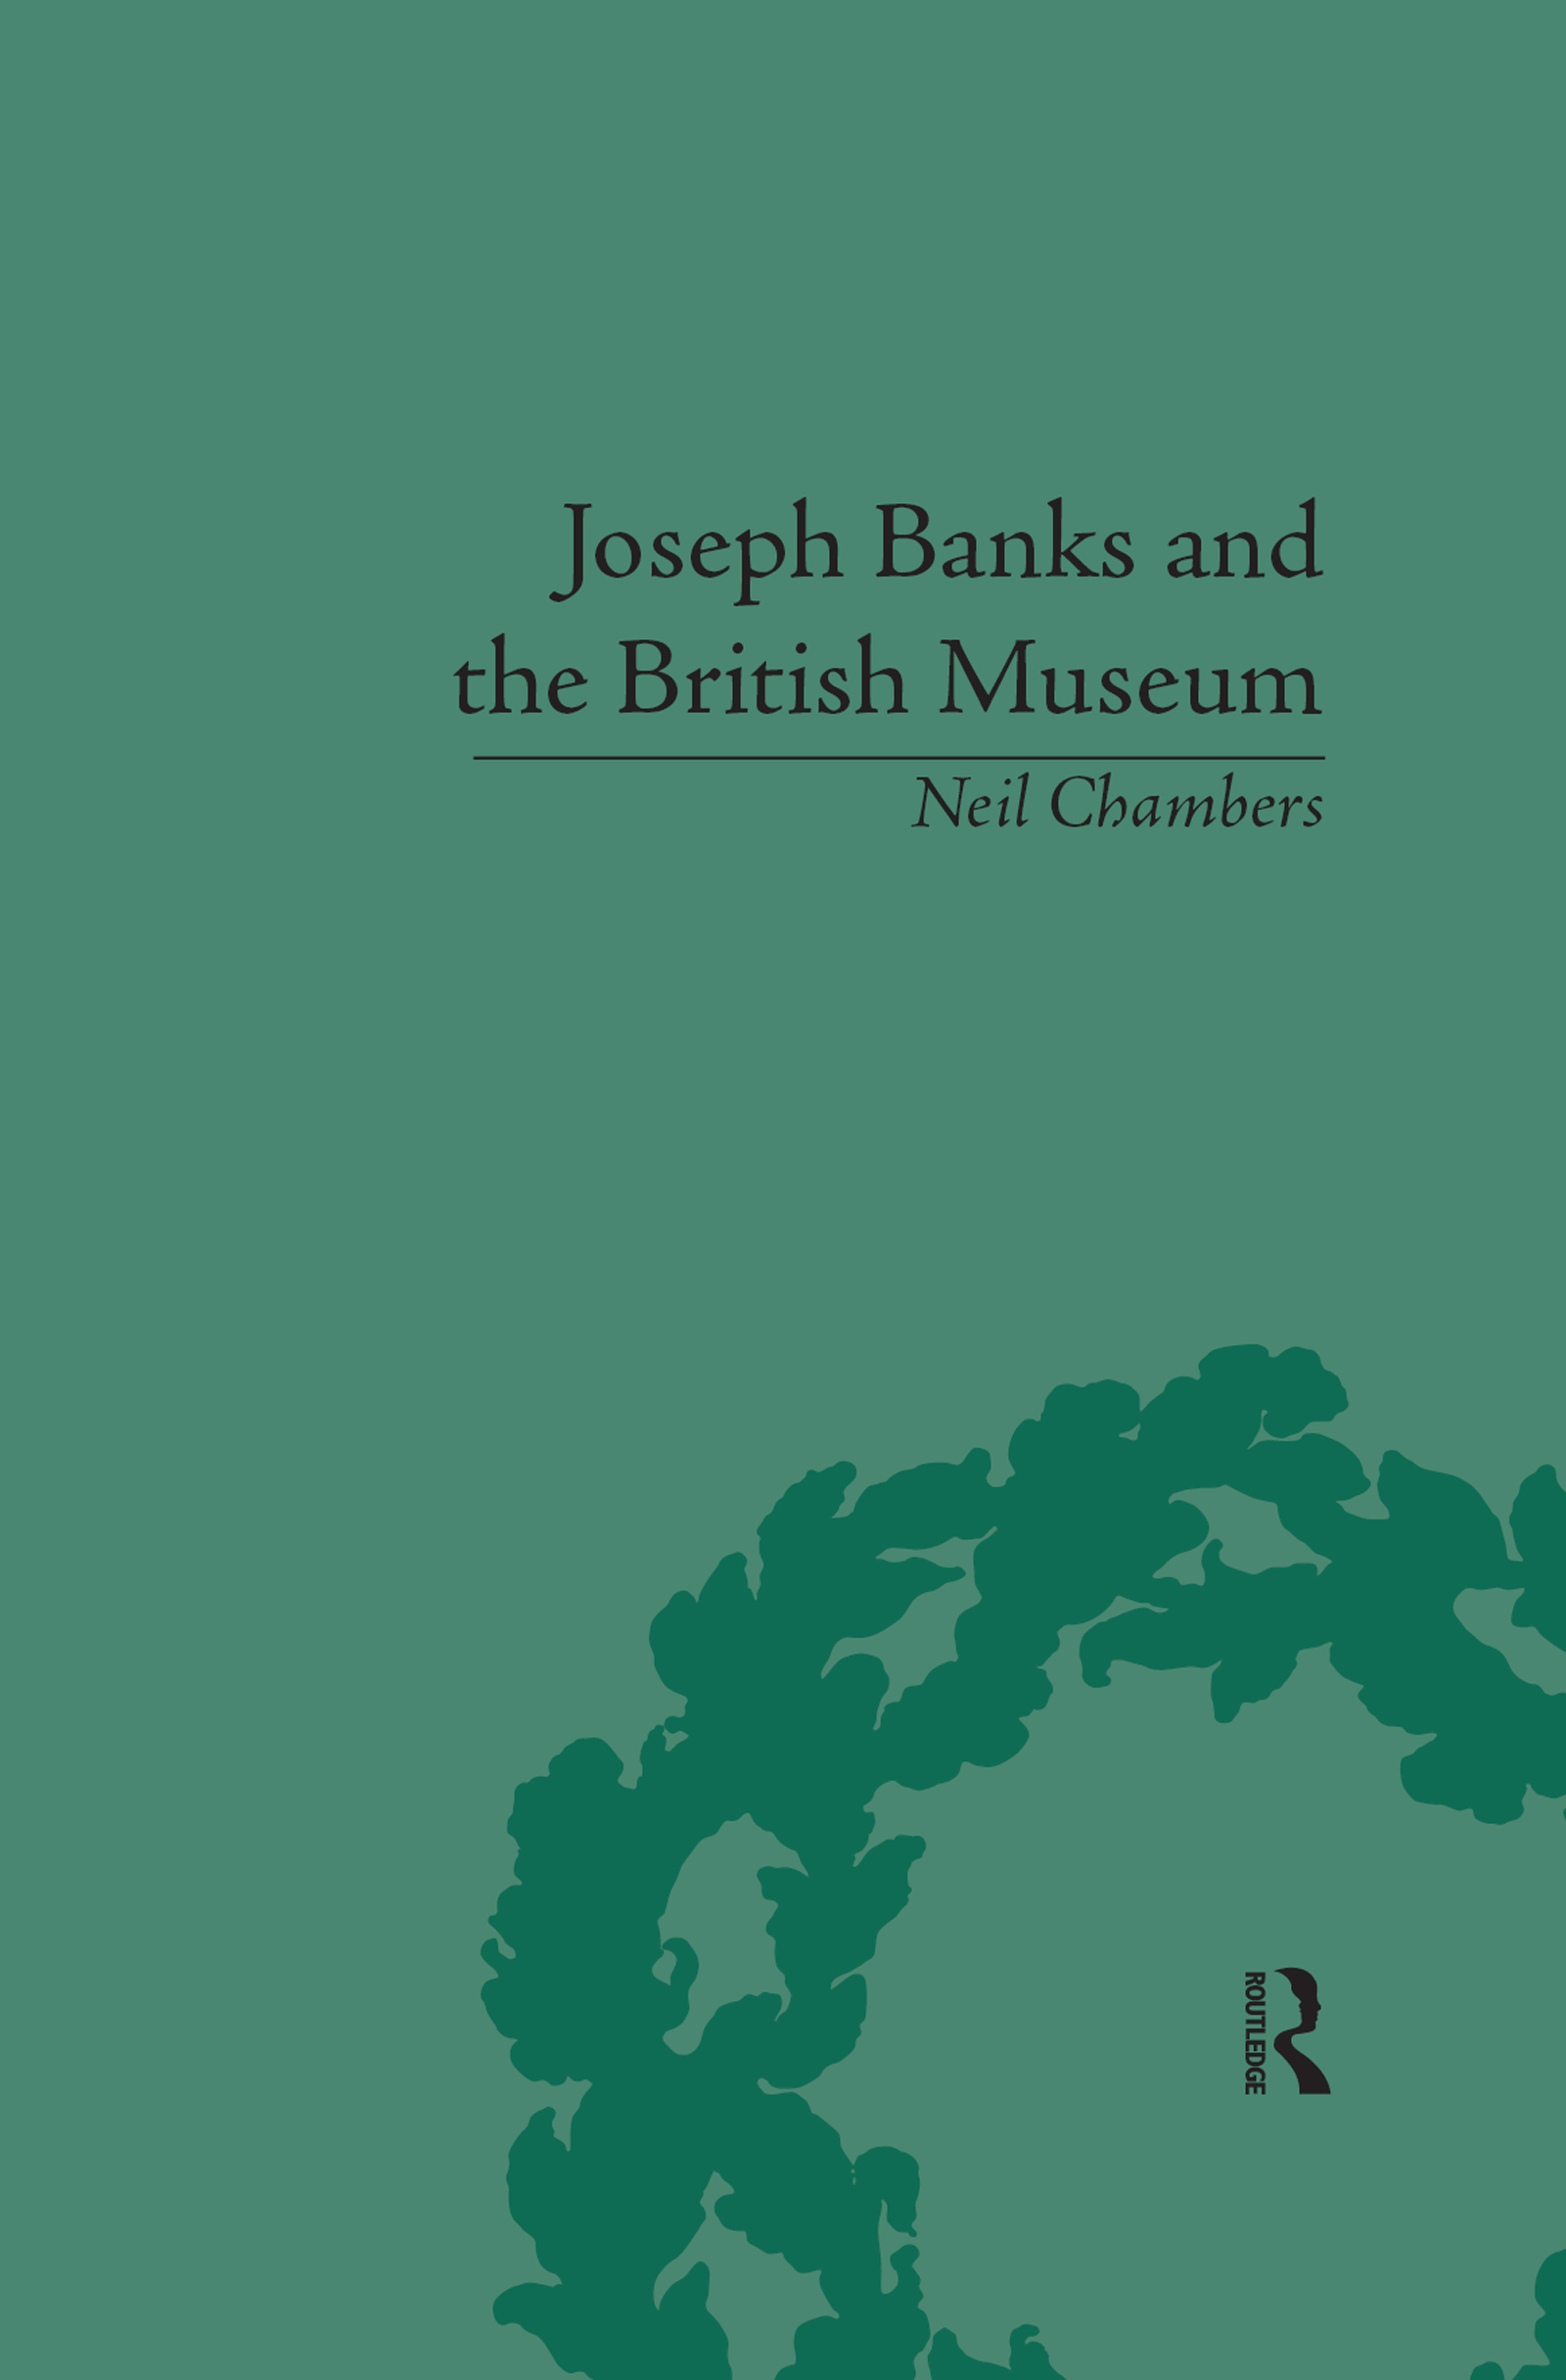 Banks as an Early                         Traveller and Collector, and the British Museum